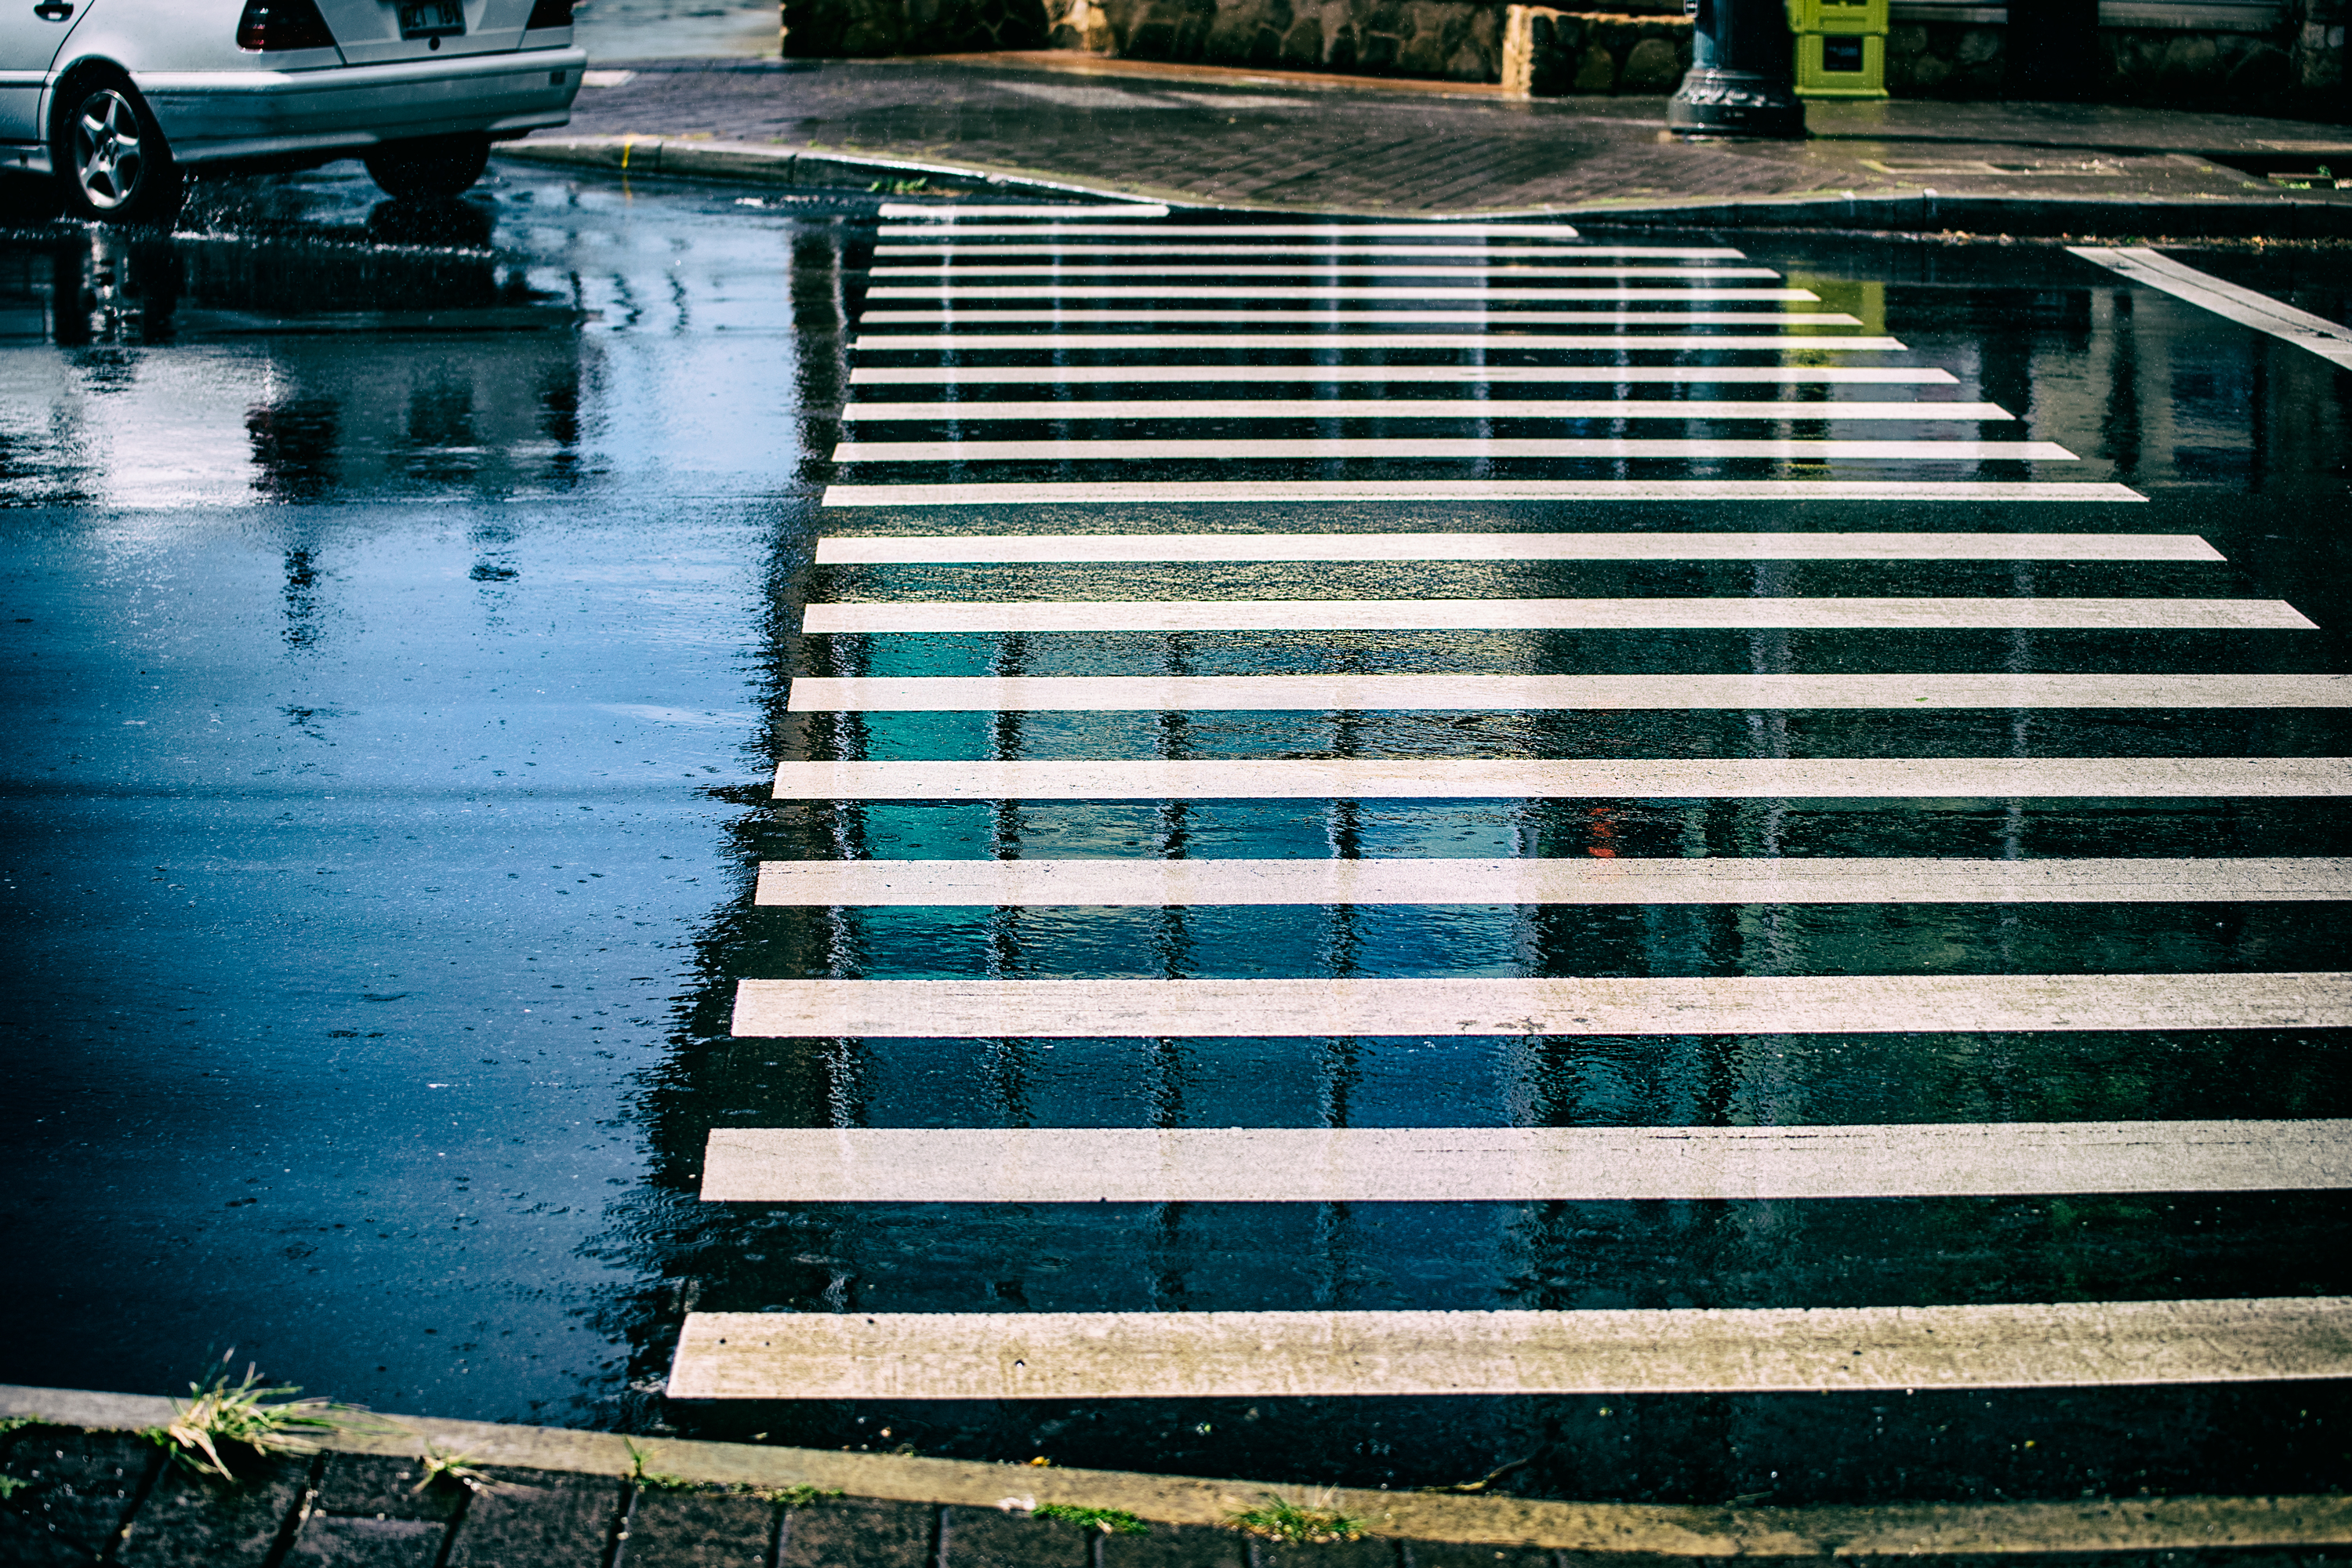 Crosswalk after the Rain